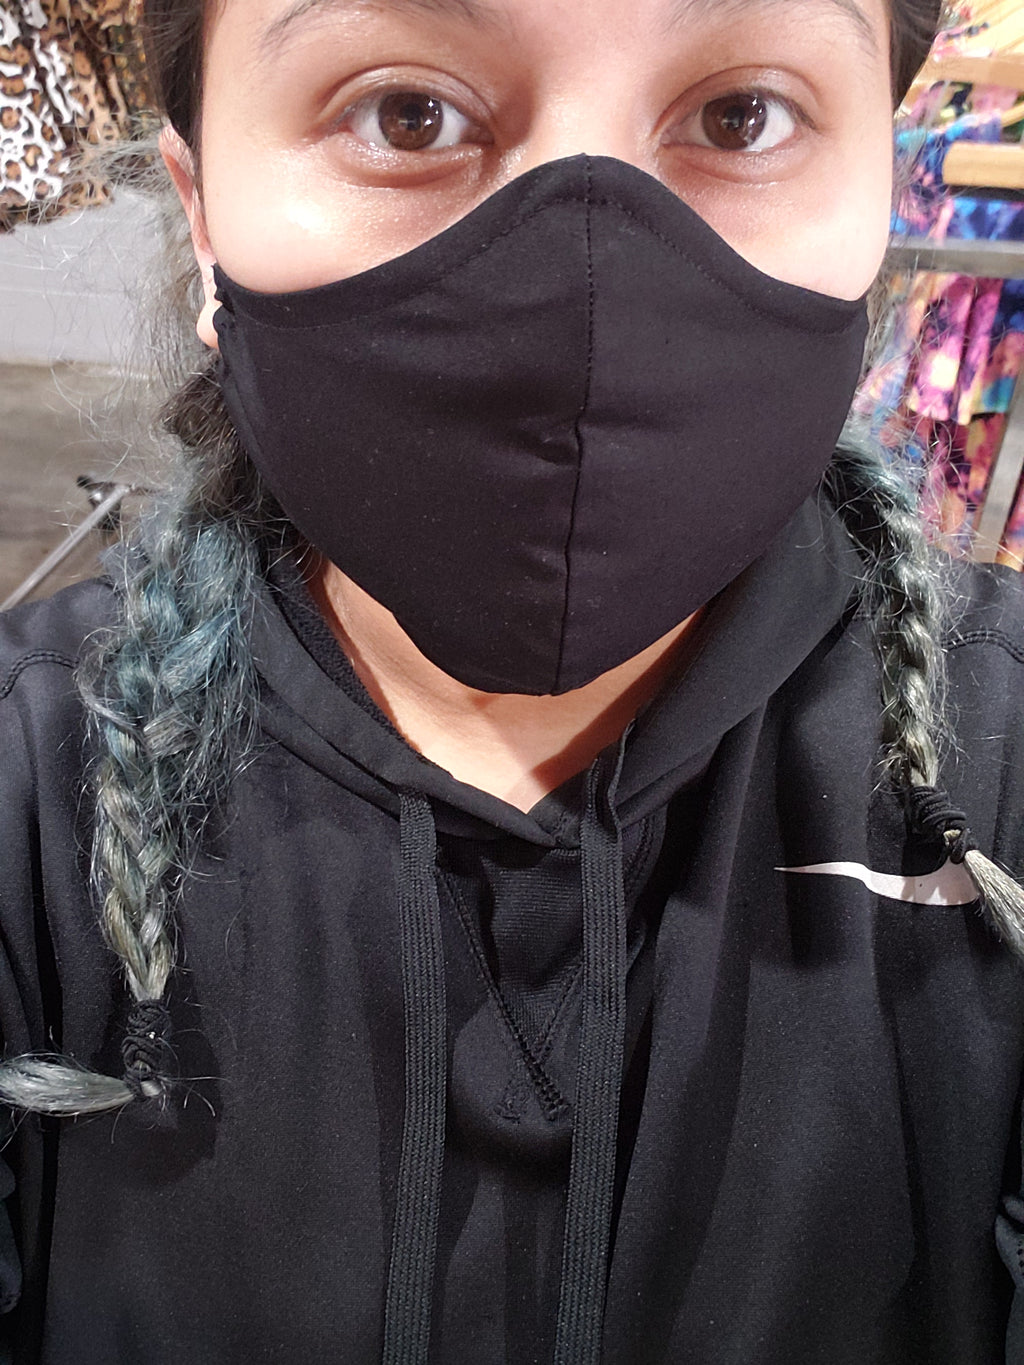 Raven Black Handmade Fashion Face Mask (not a protective mask)